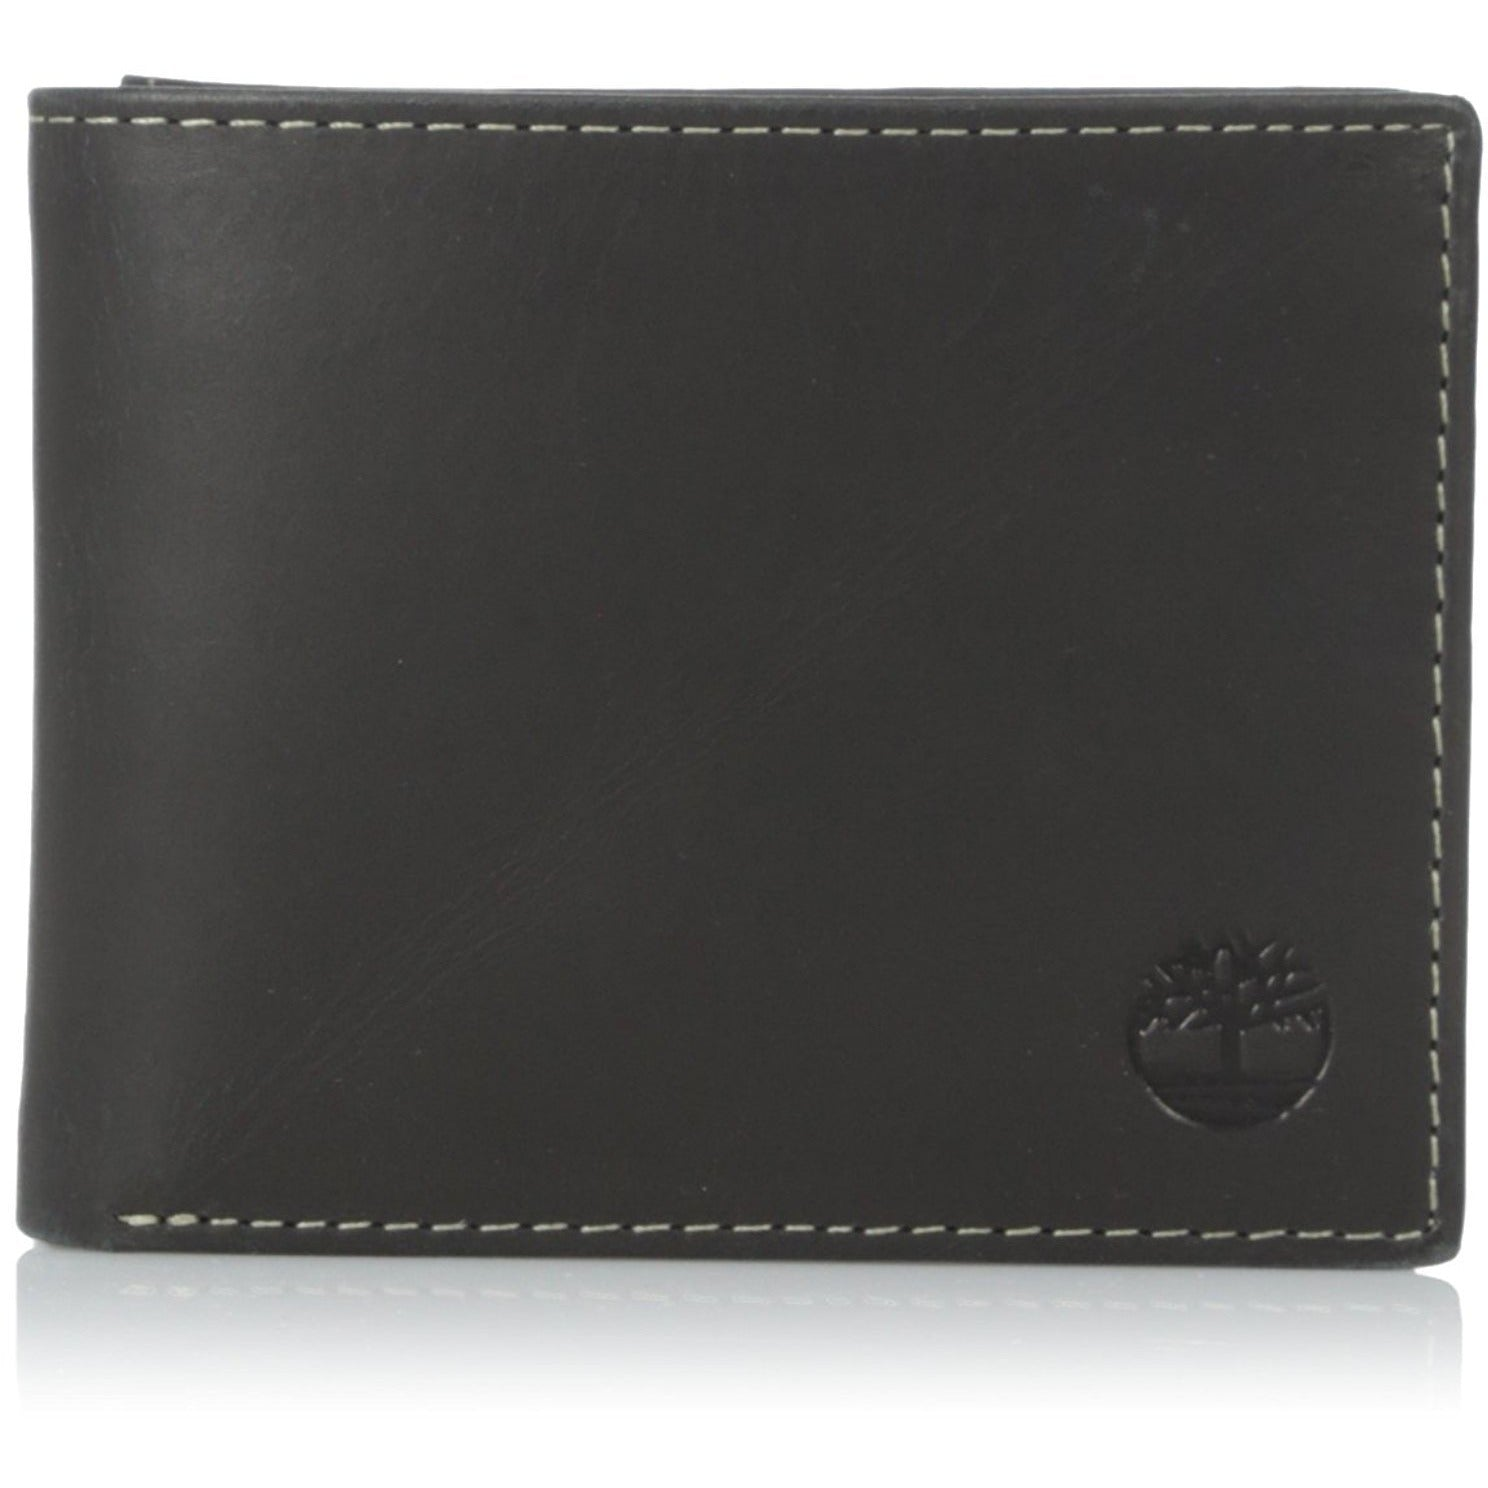 Timberland Men's Hunter Wallet with Pass-case - D77218/08